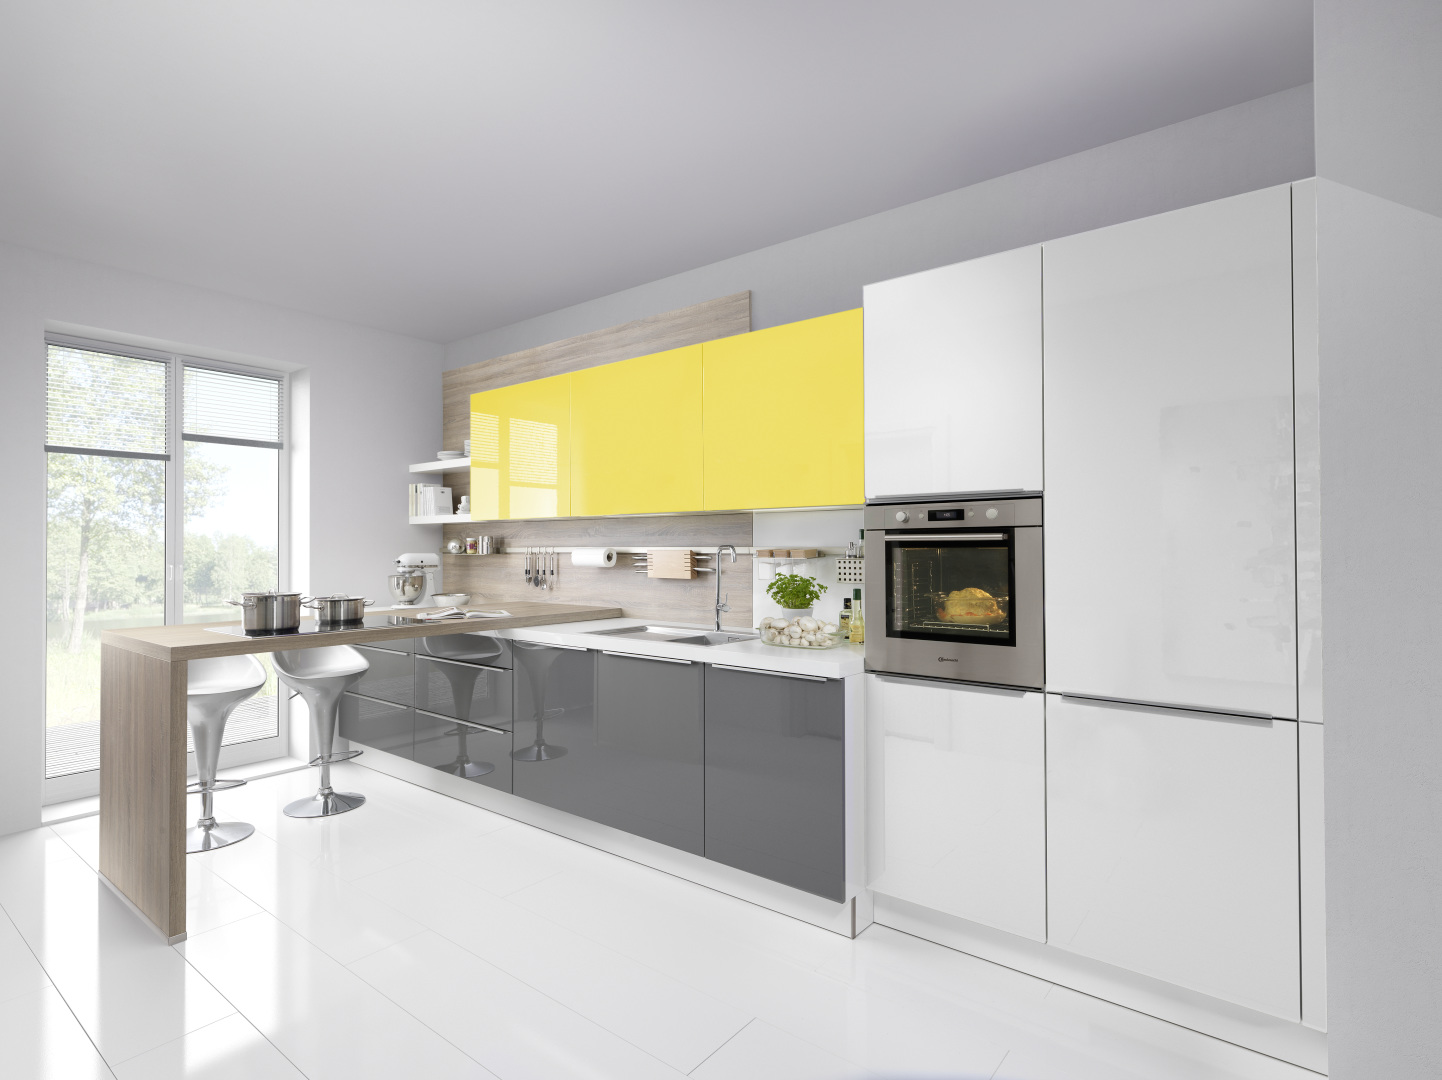 Noltekitchenscom Nolte Kitchens Stylish Designer